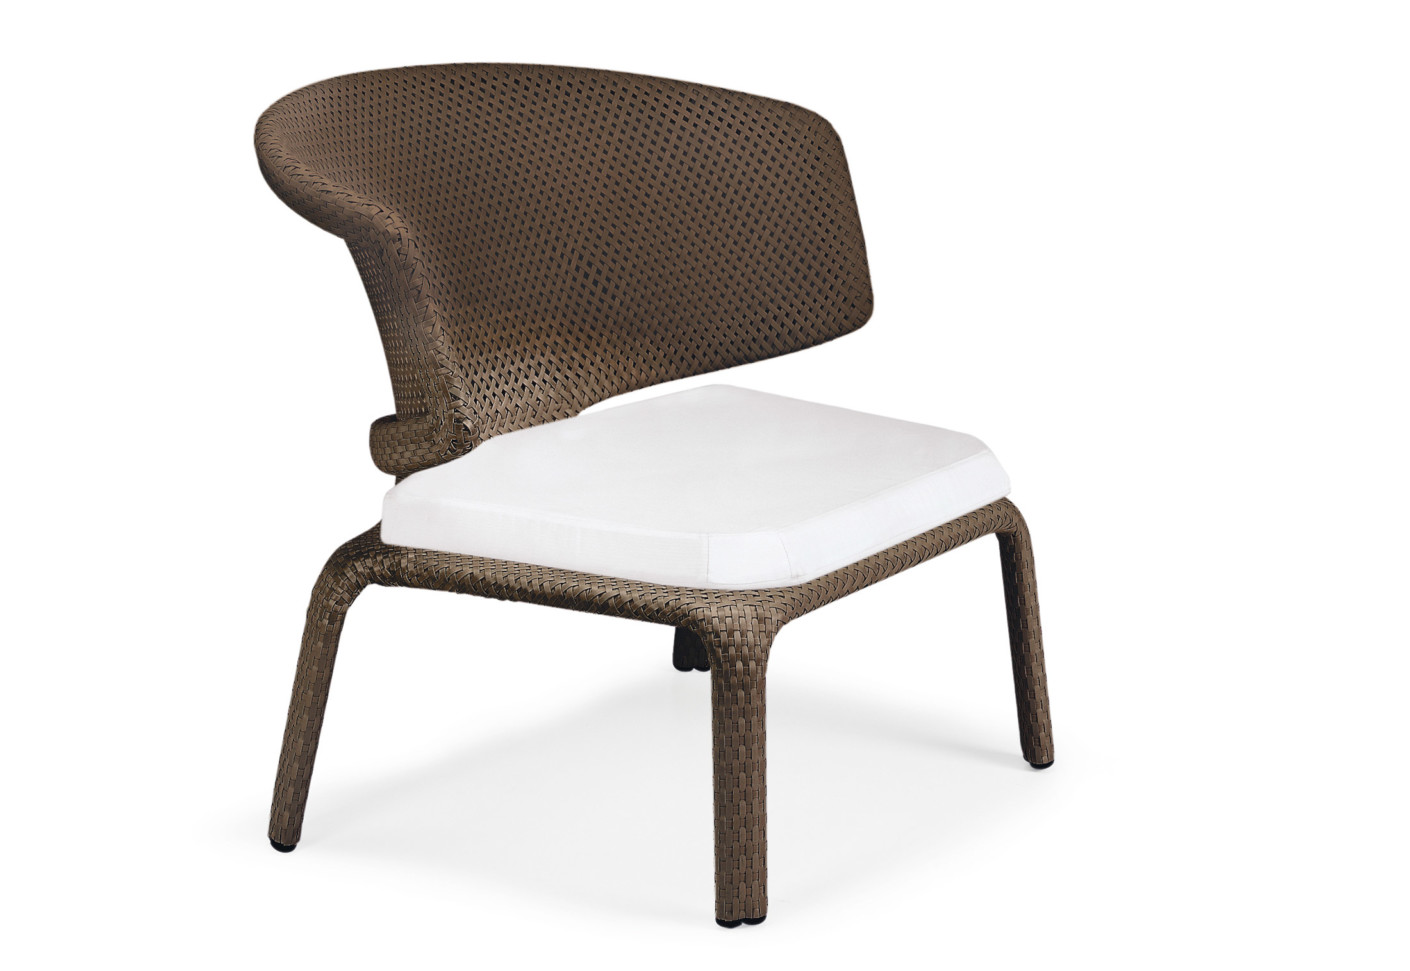 Seashell lounge chair by dedon stylepark for Dedon outdoor furniture